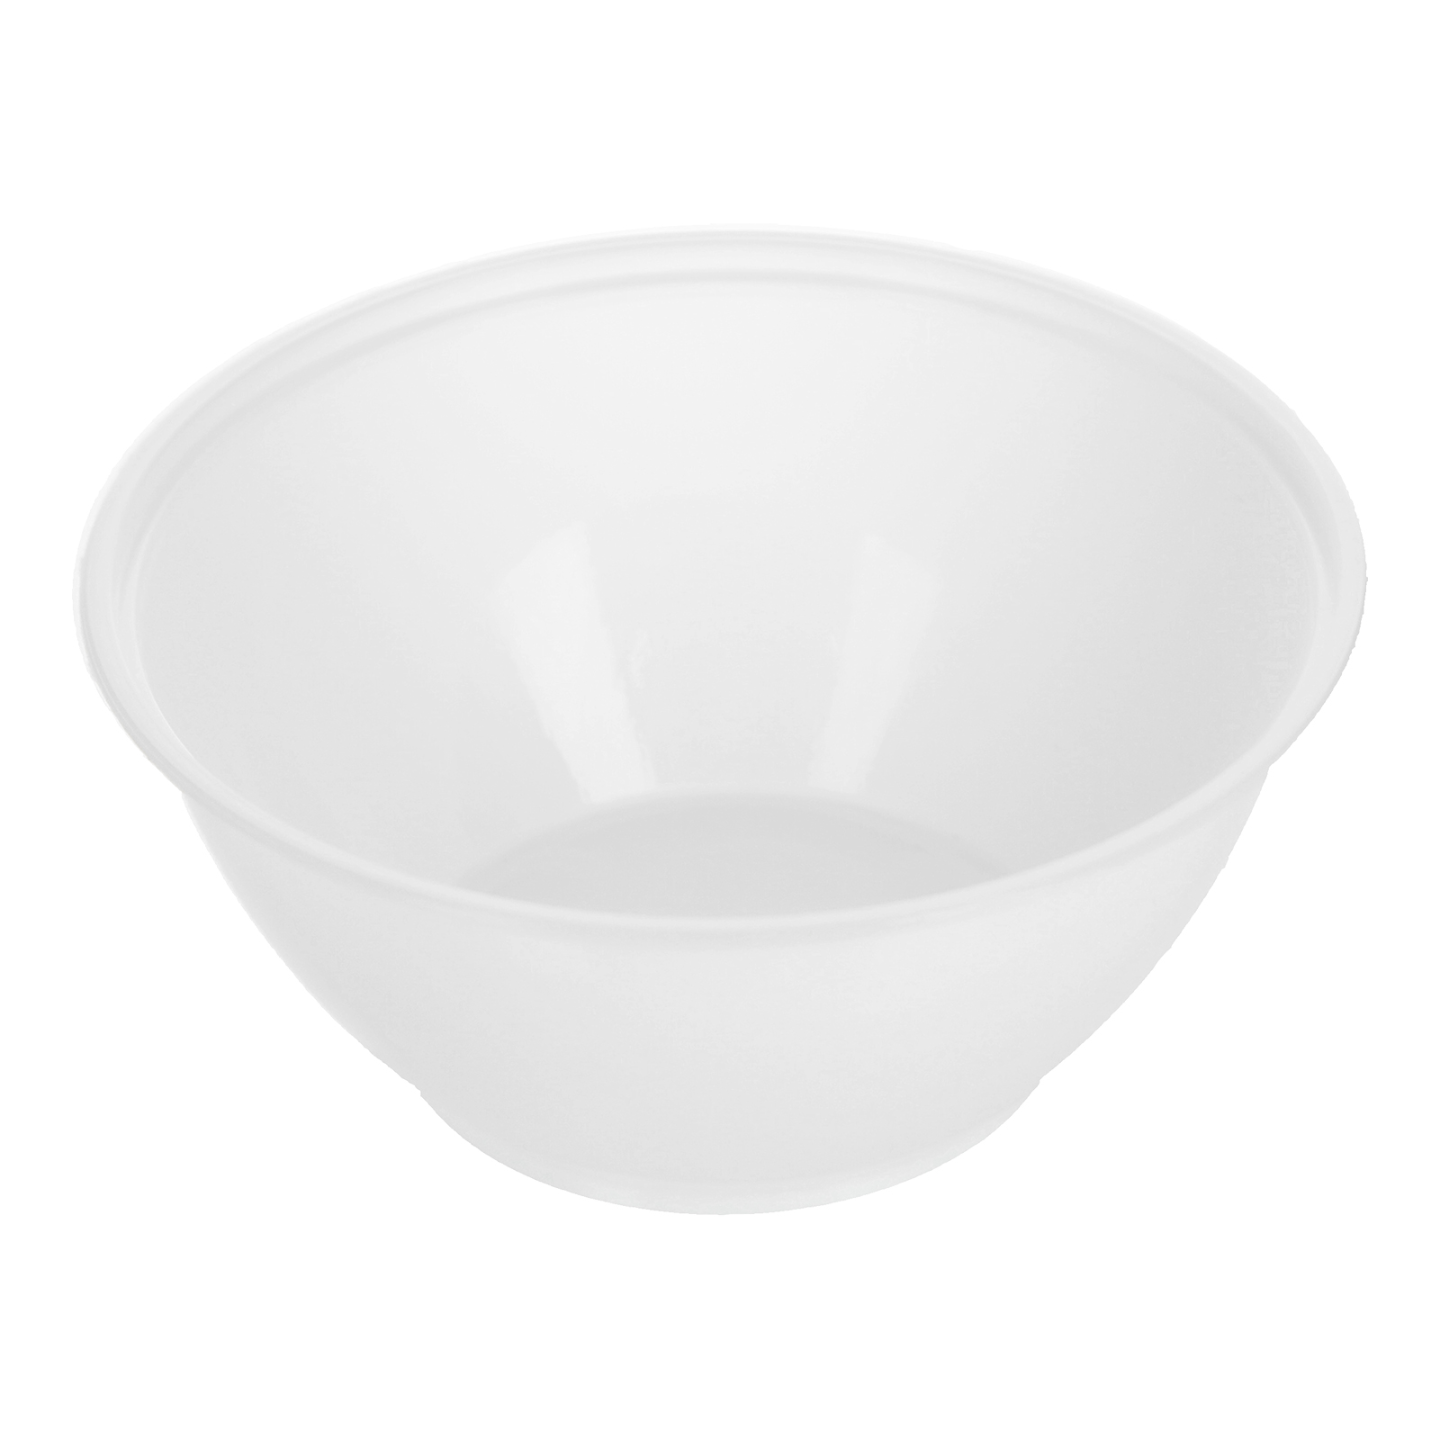 MS W3 White Plastic Bowl 塑料碗白